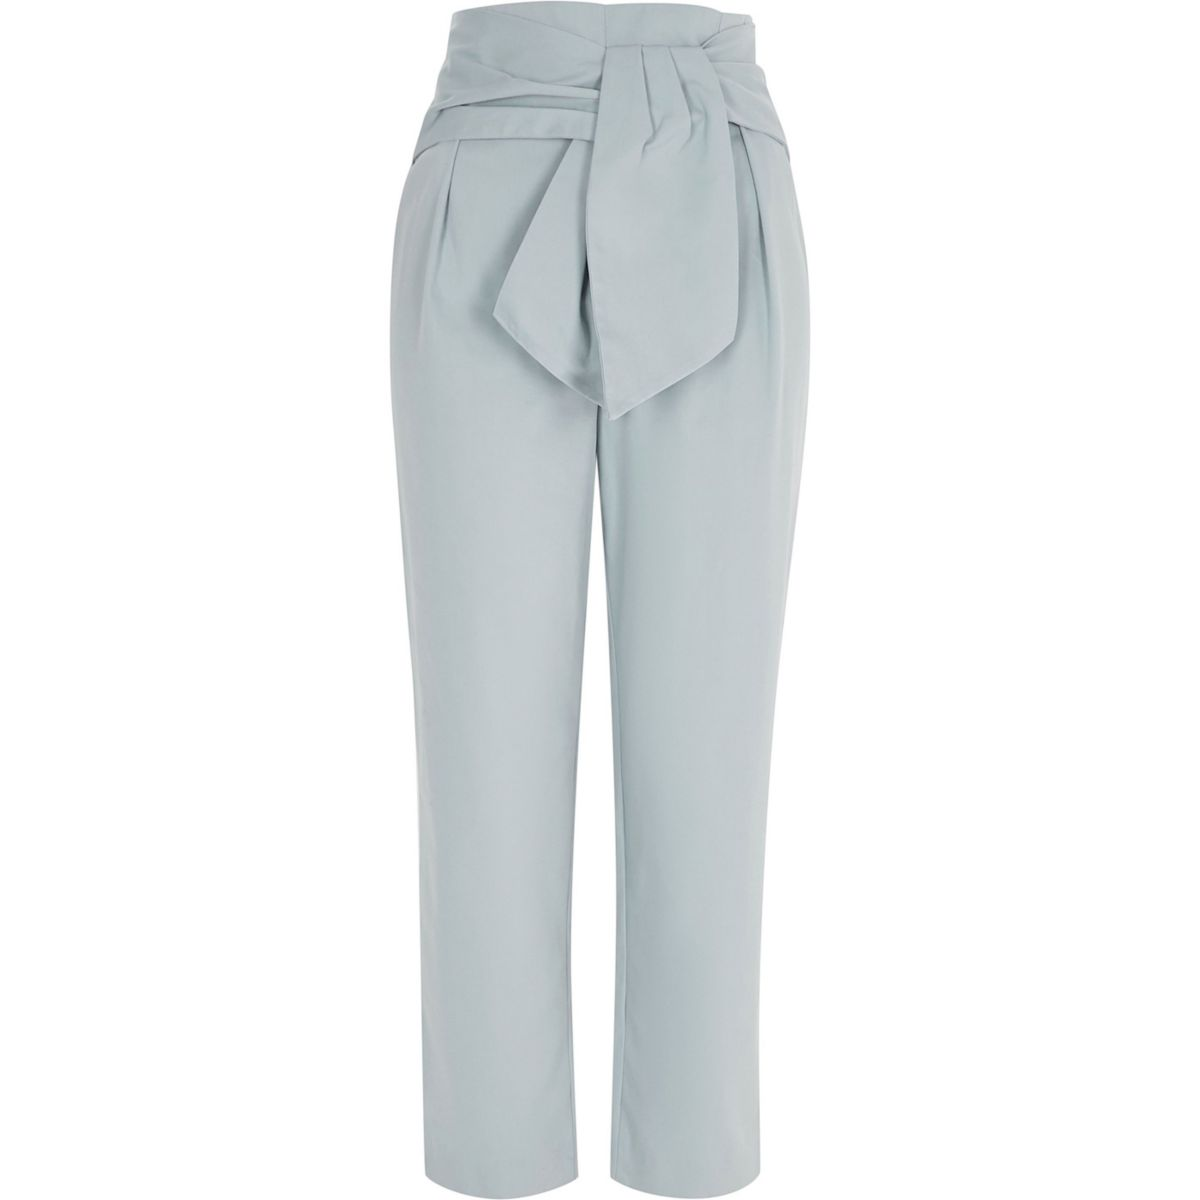 Blue Tie Front Peg Trousers by River Island